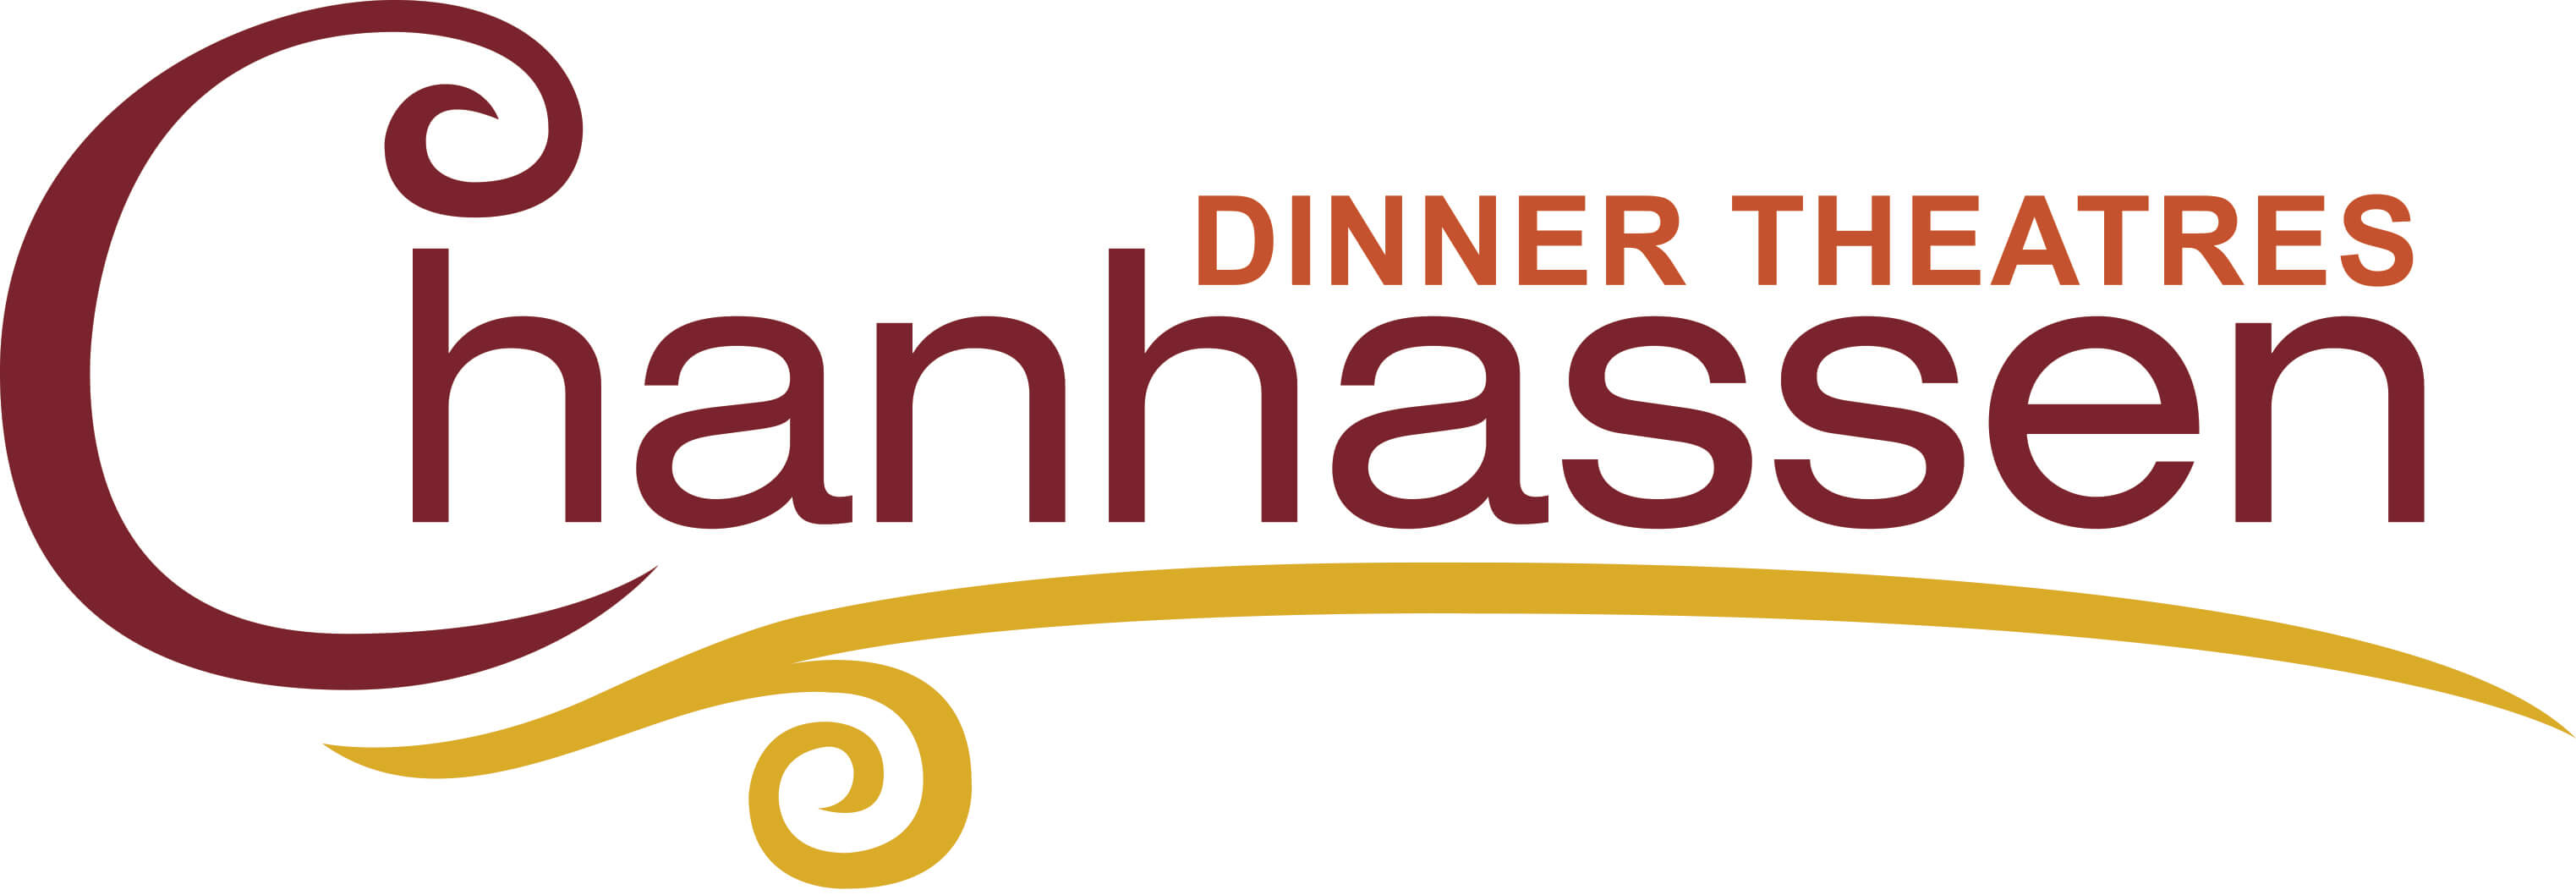 Chanhassen Dinner Theatres Logo